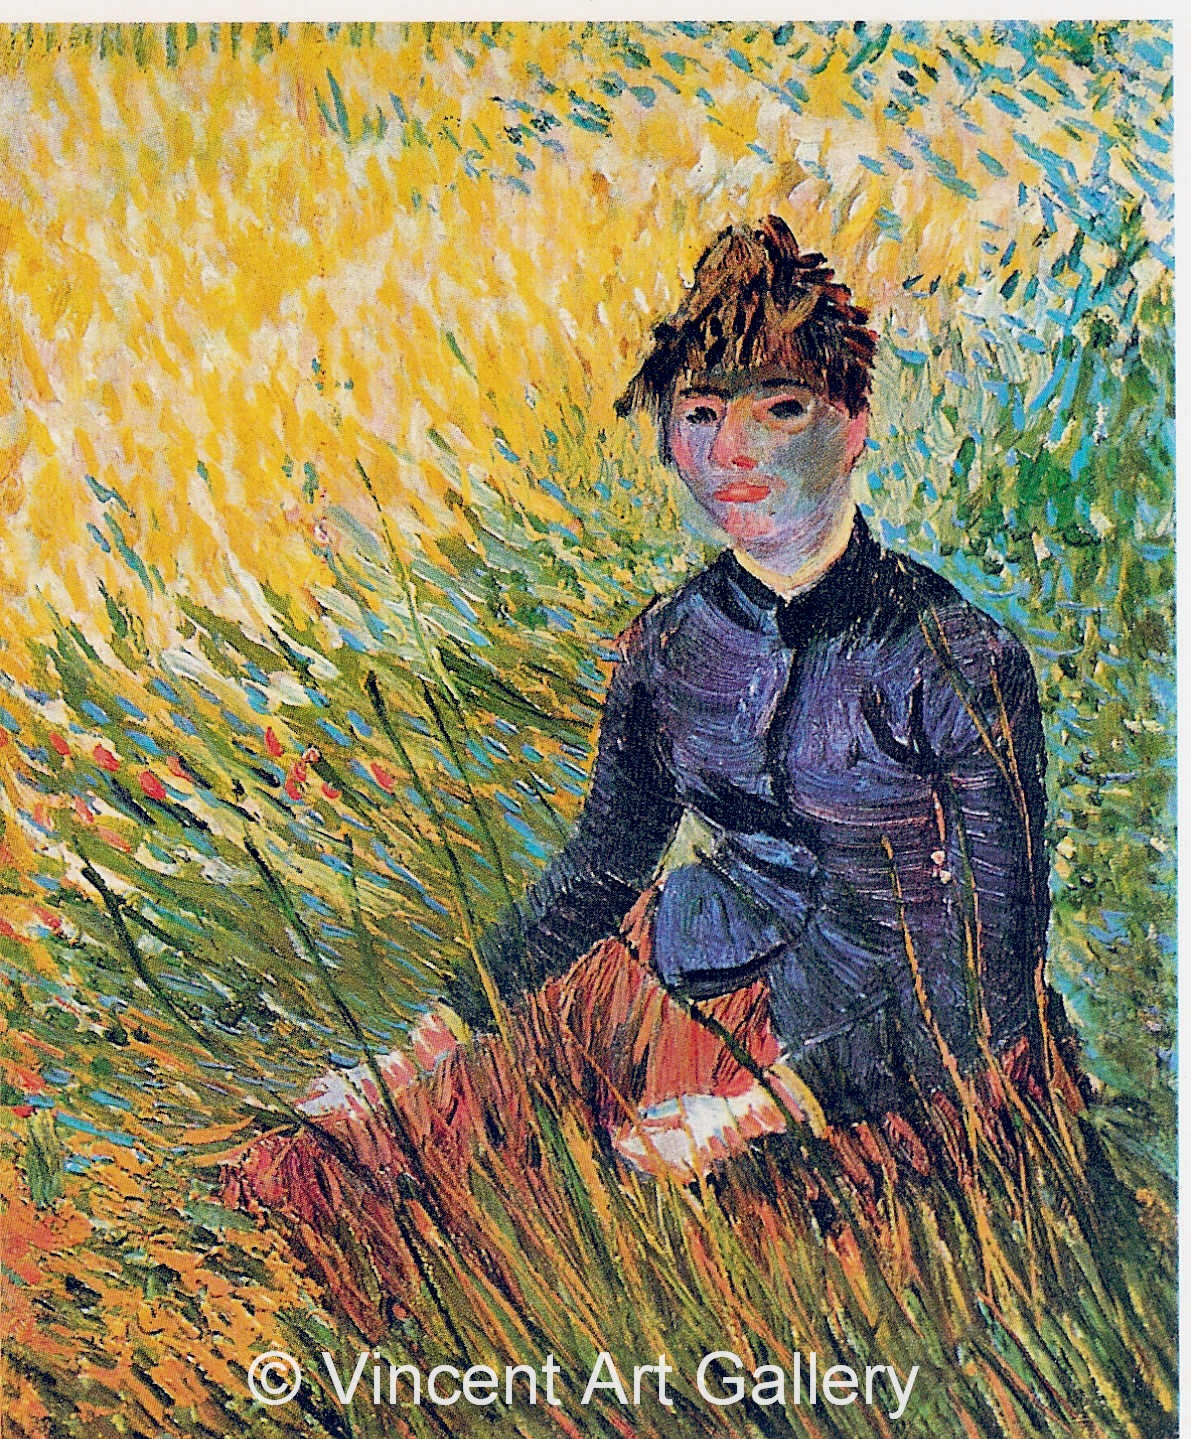 JH1261, Woman Sitting in the Grass